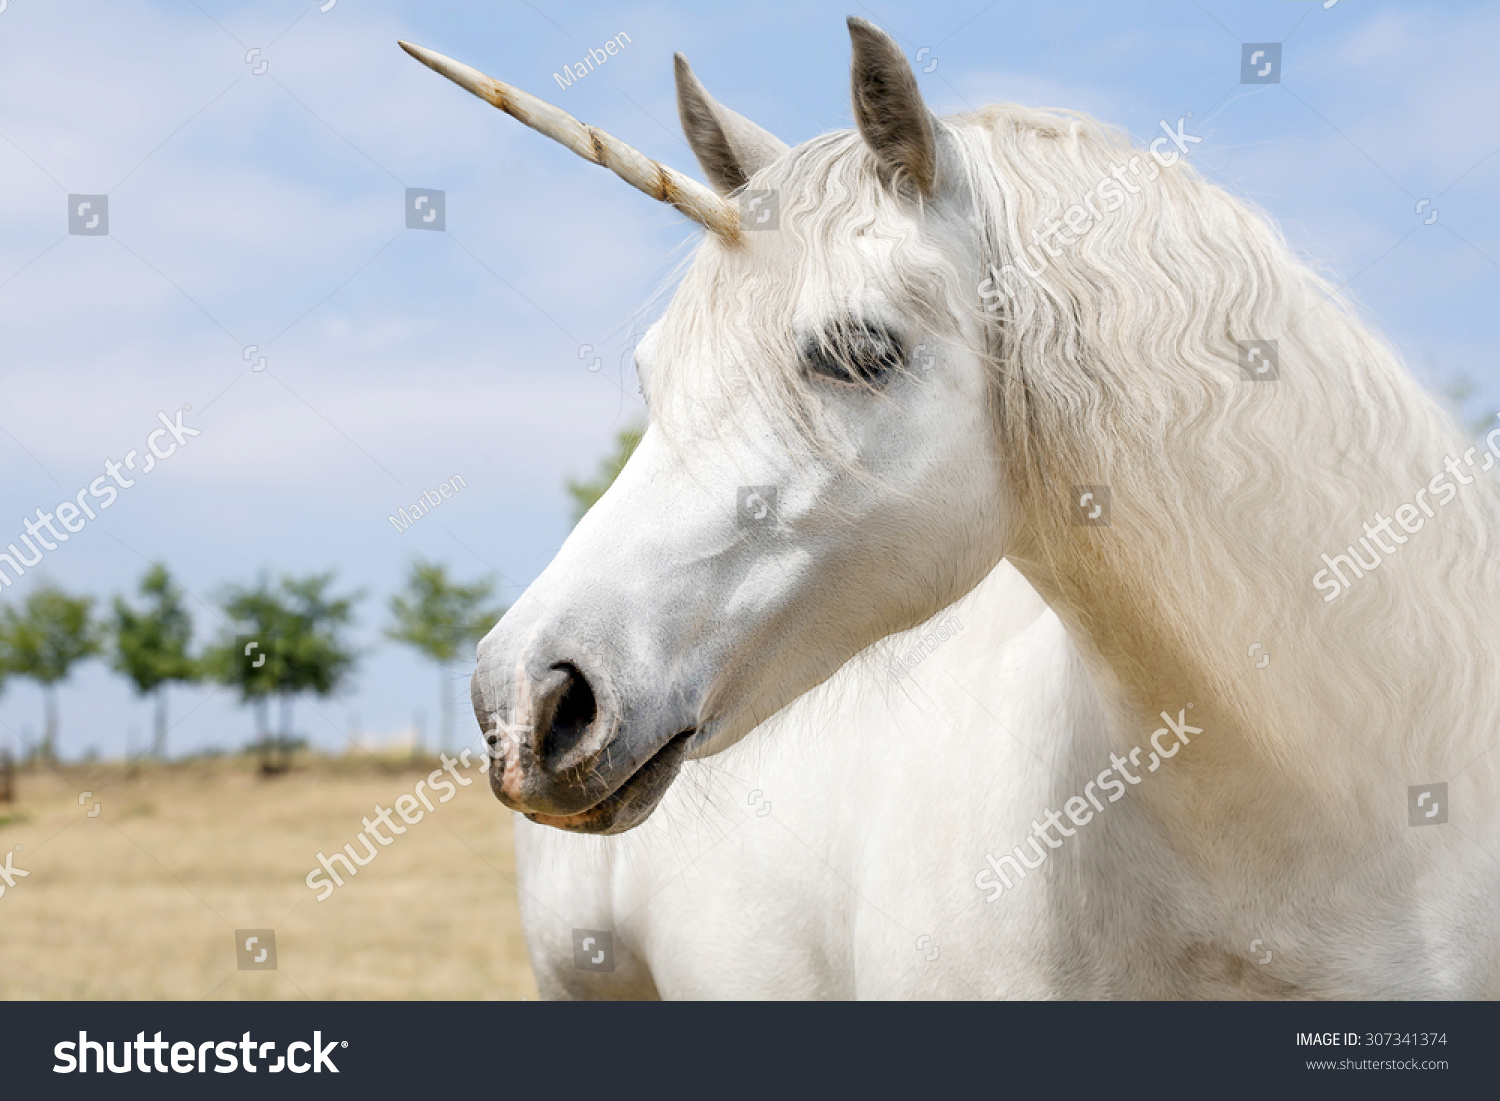 Unicorn Realistic Photography Stock Photo 307341374 ...